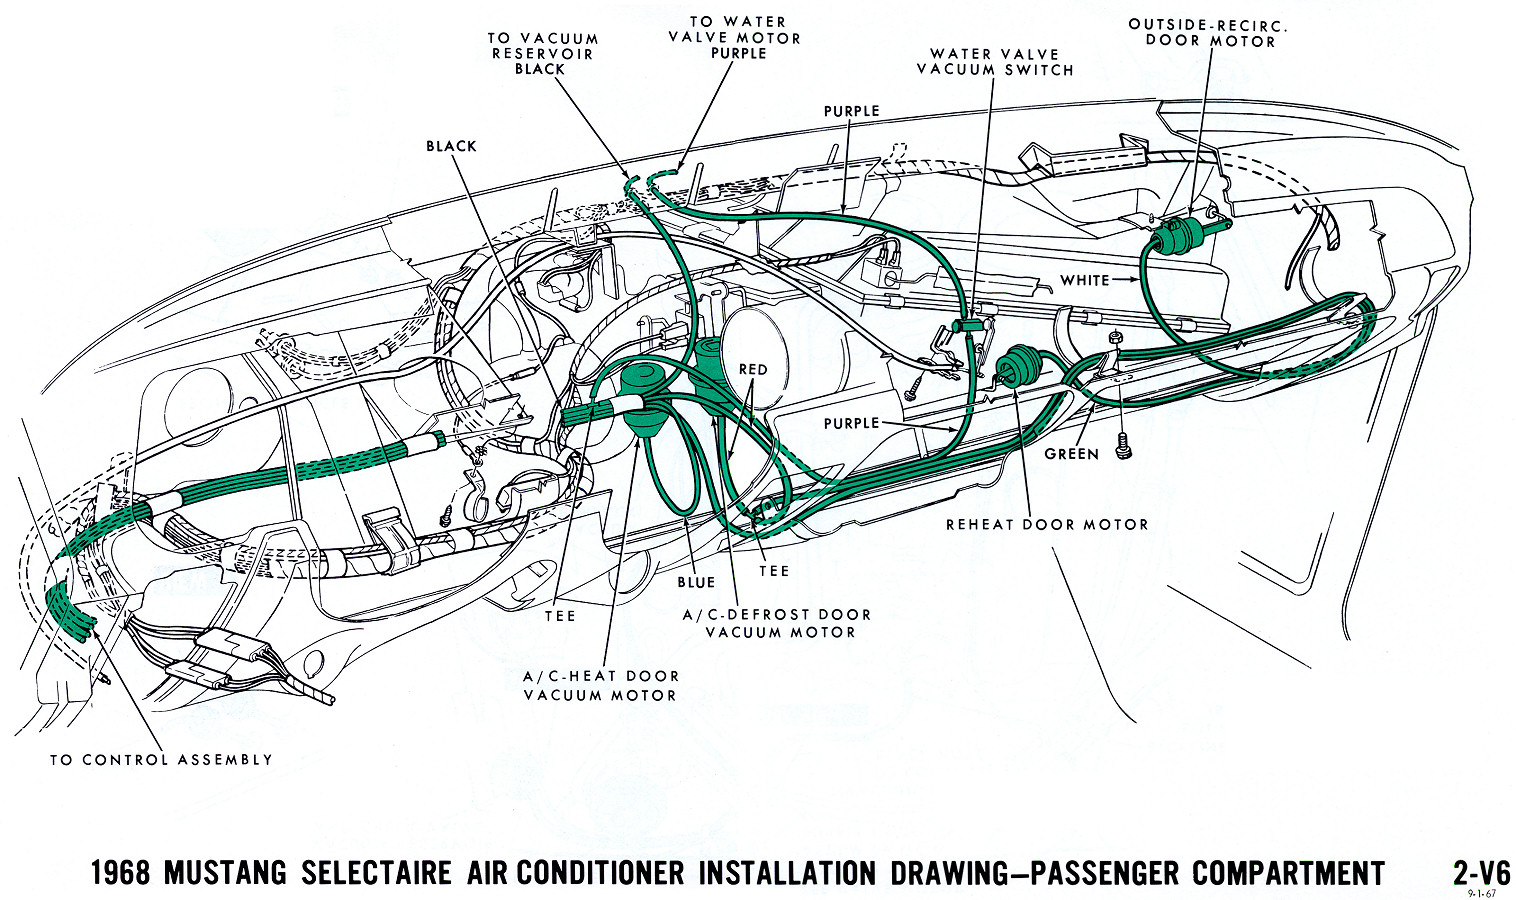 hight resolution of 1966 mustang air conditioner wiring diagram images gallery 1968 mustang vacuum diagrams evolving software